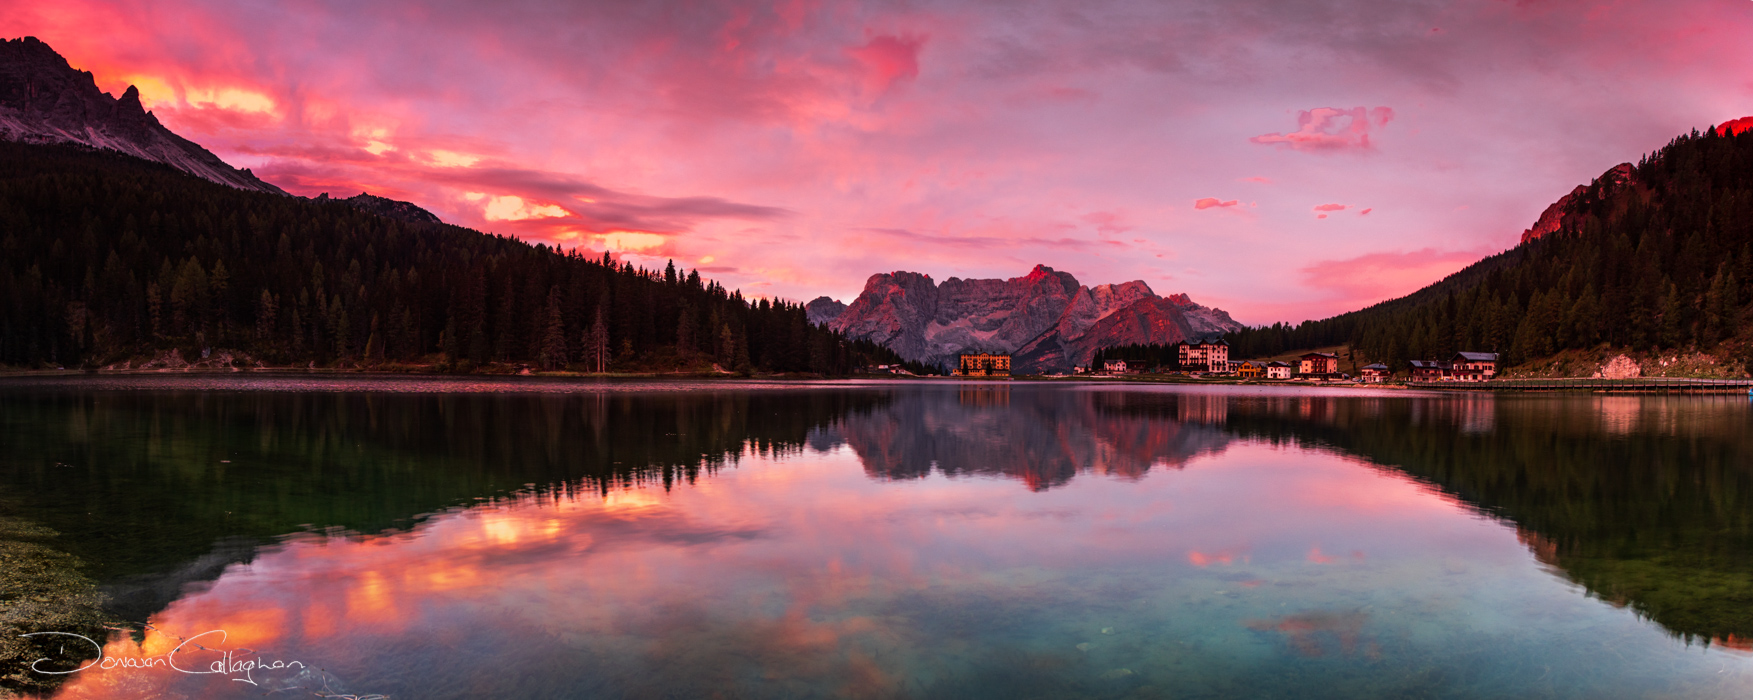 Lake Misurina sunrise Pano, Italy